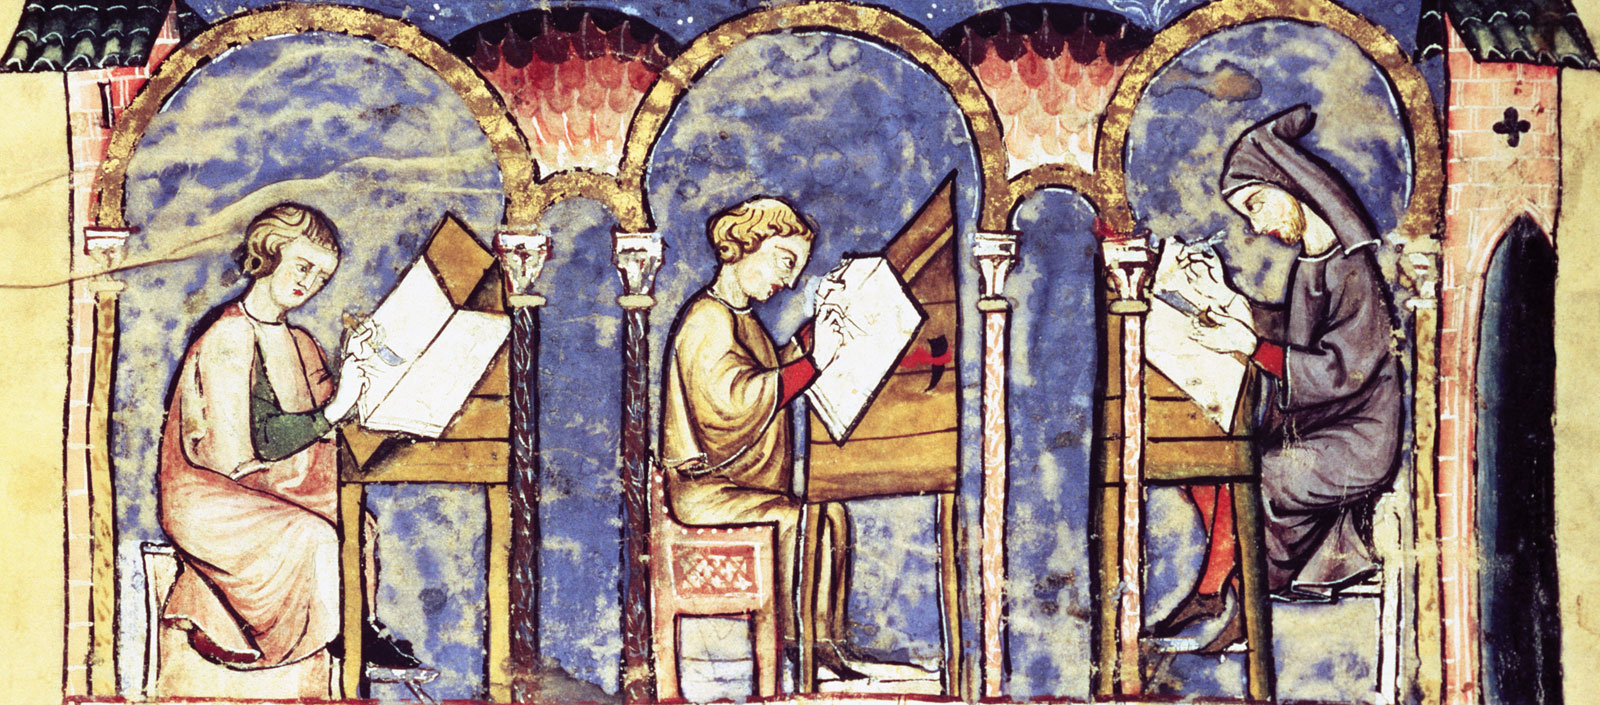 art and society in the high middle ages 1the middle ages was a period from the 5th to 16th centuries the renaissance was the period between the 14th and the 16th centuries 2the printing press was used in the renaissance age whereas parchment was used in the middle ages.